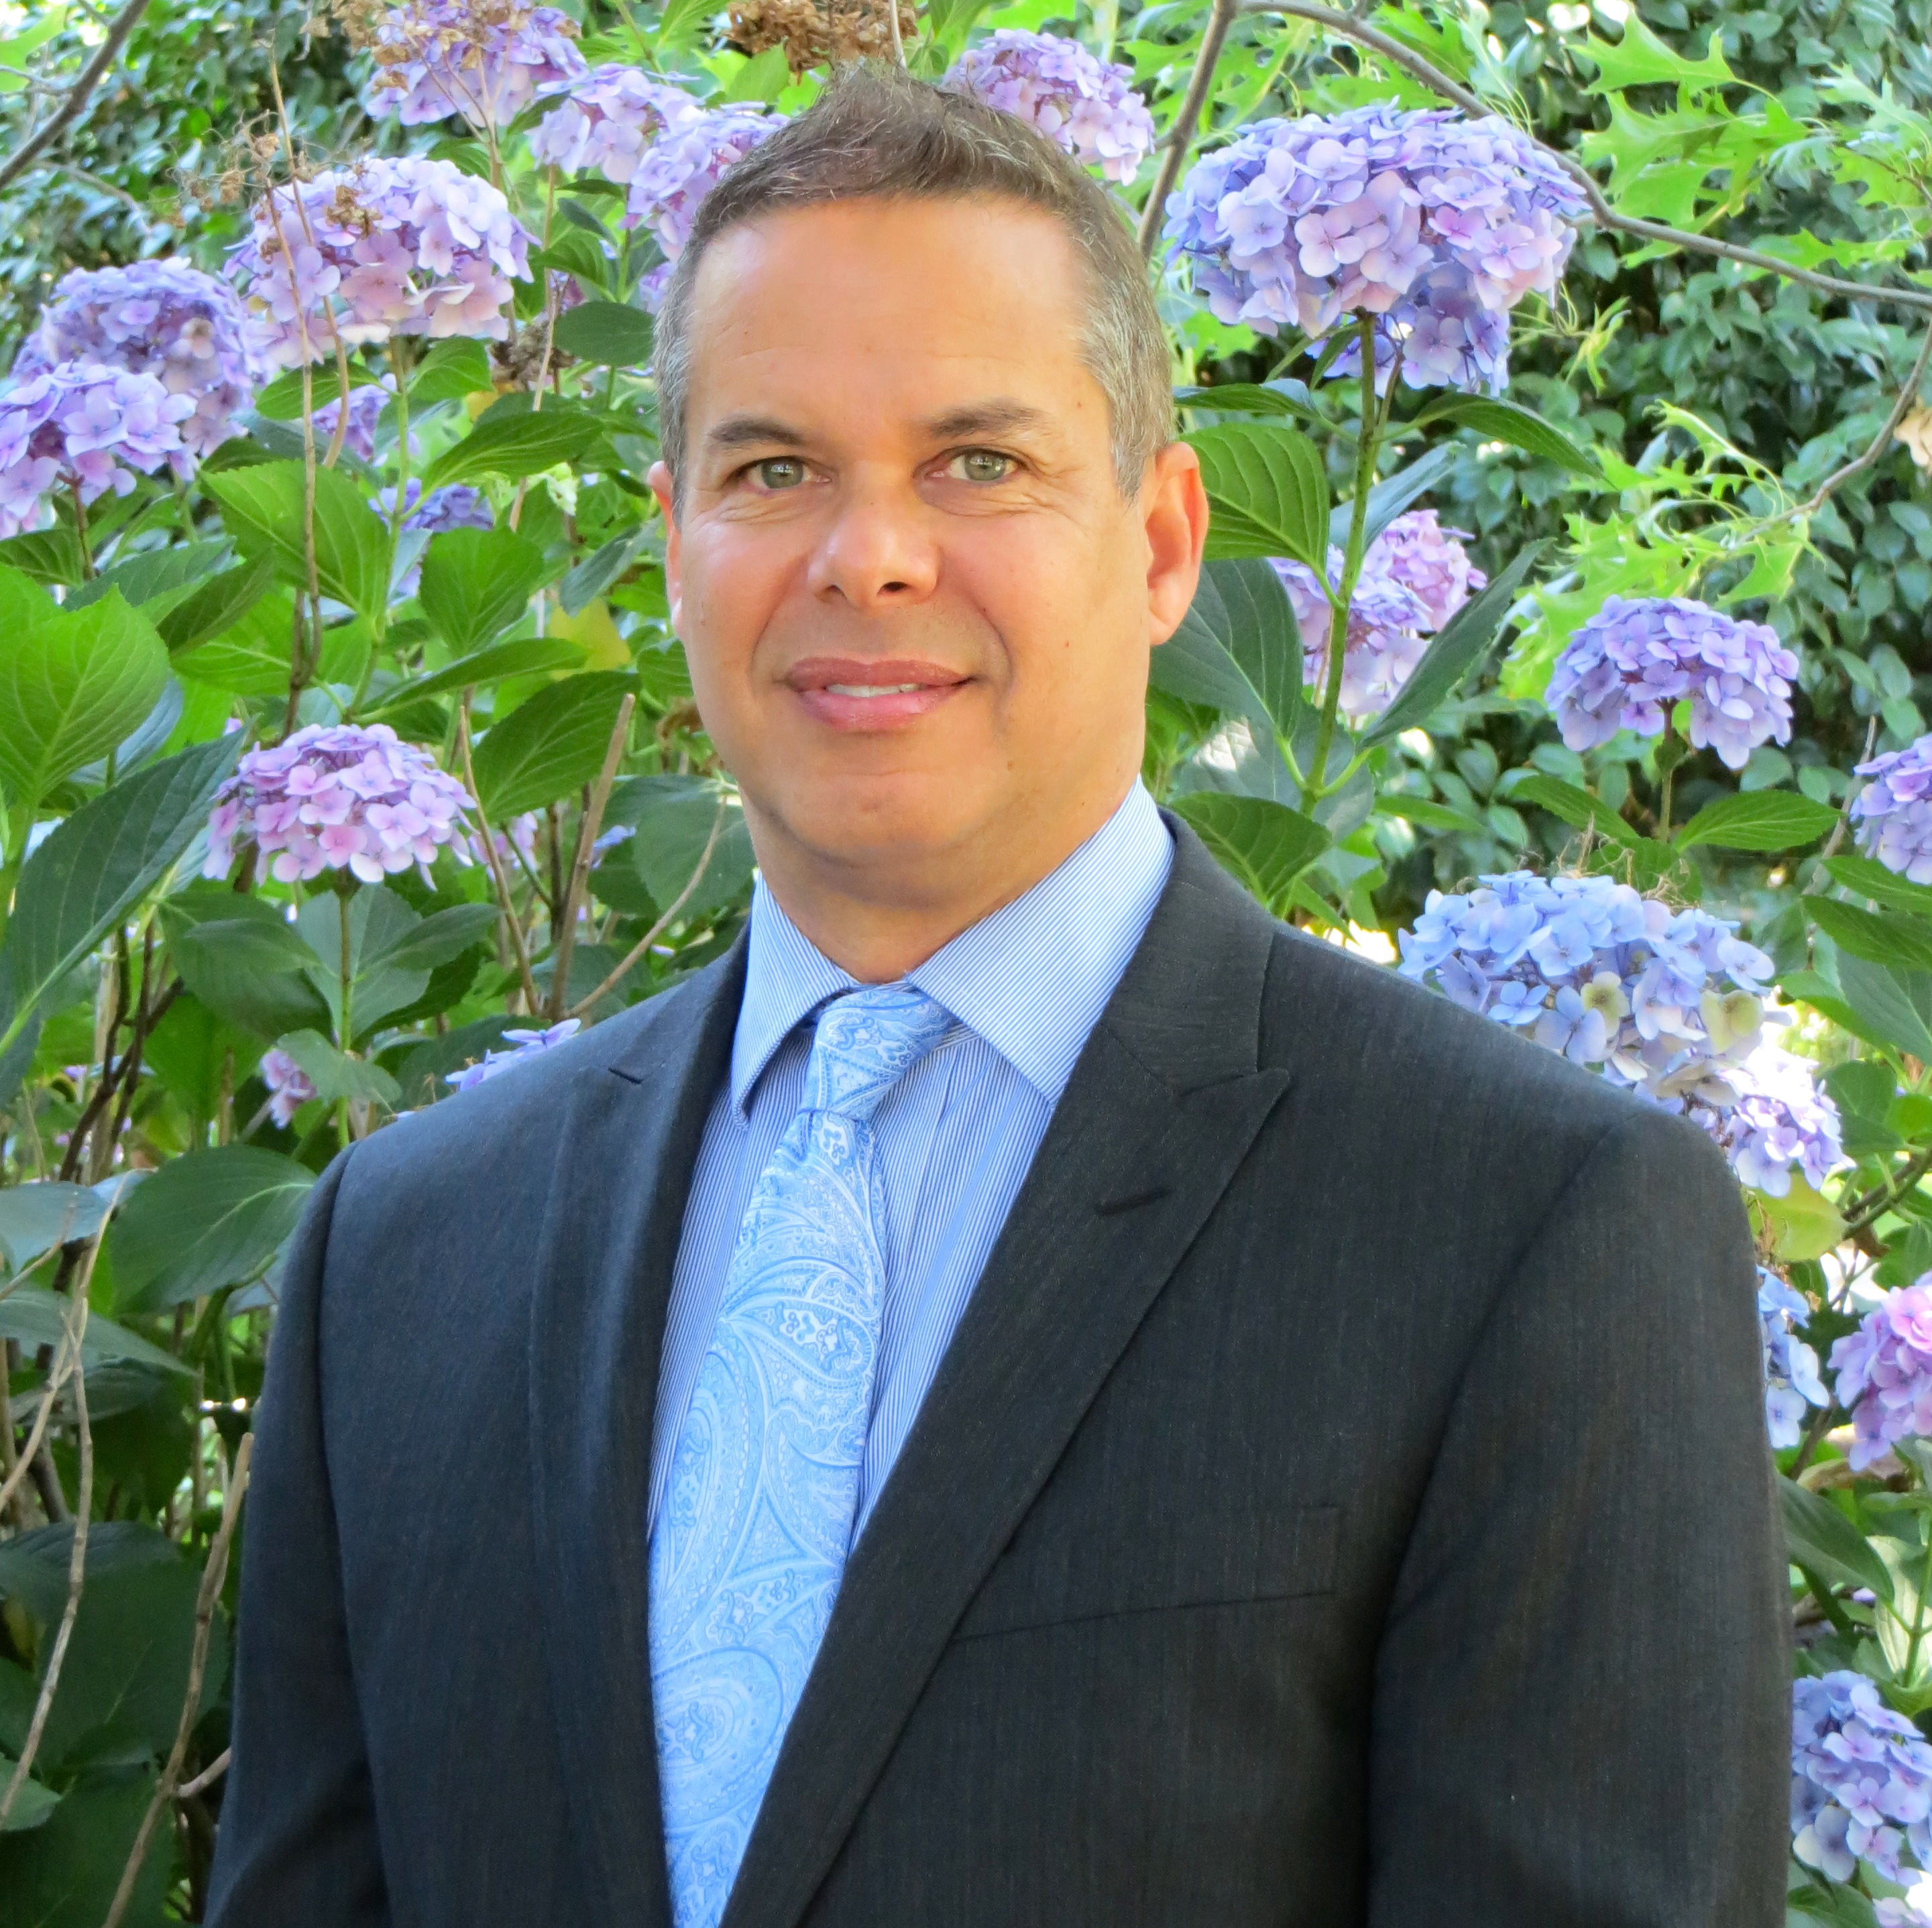 Marc Connerly, Executive Director of Associations